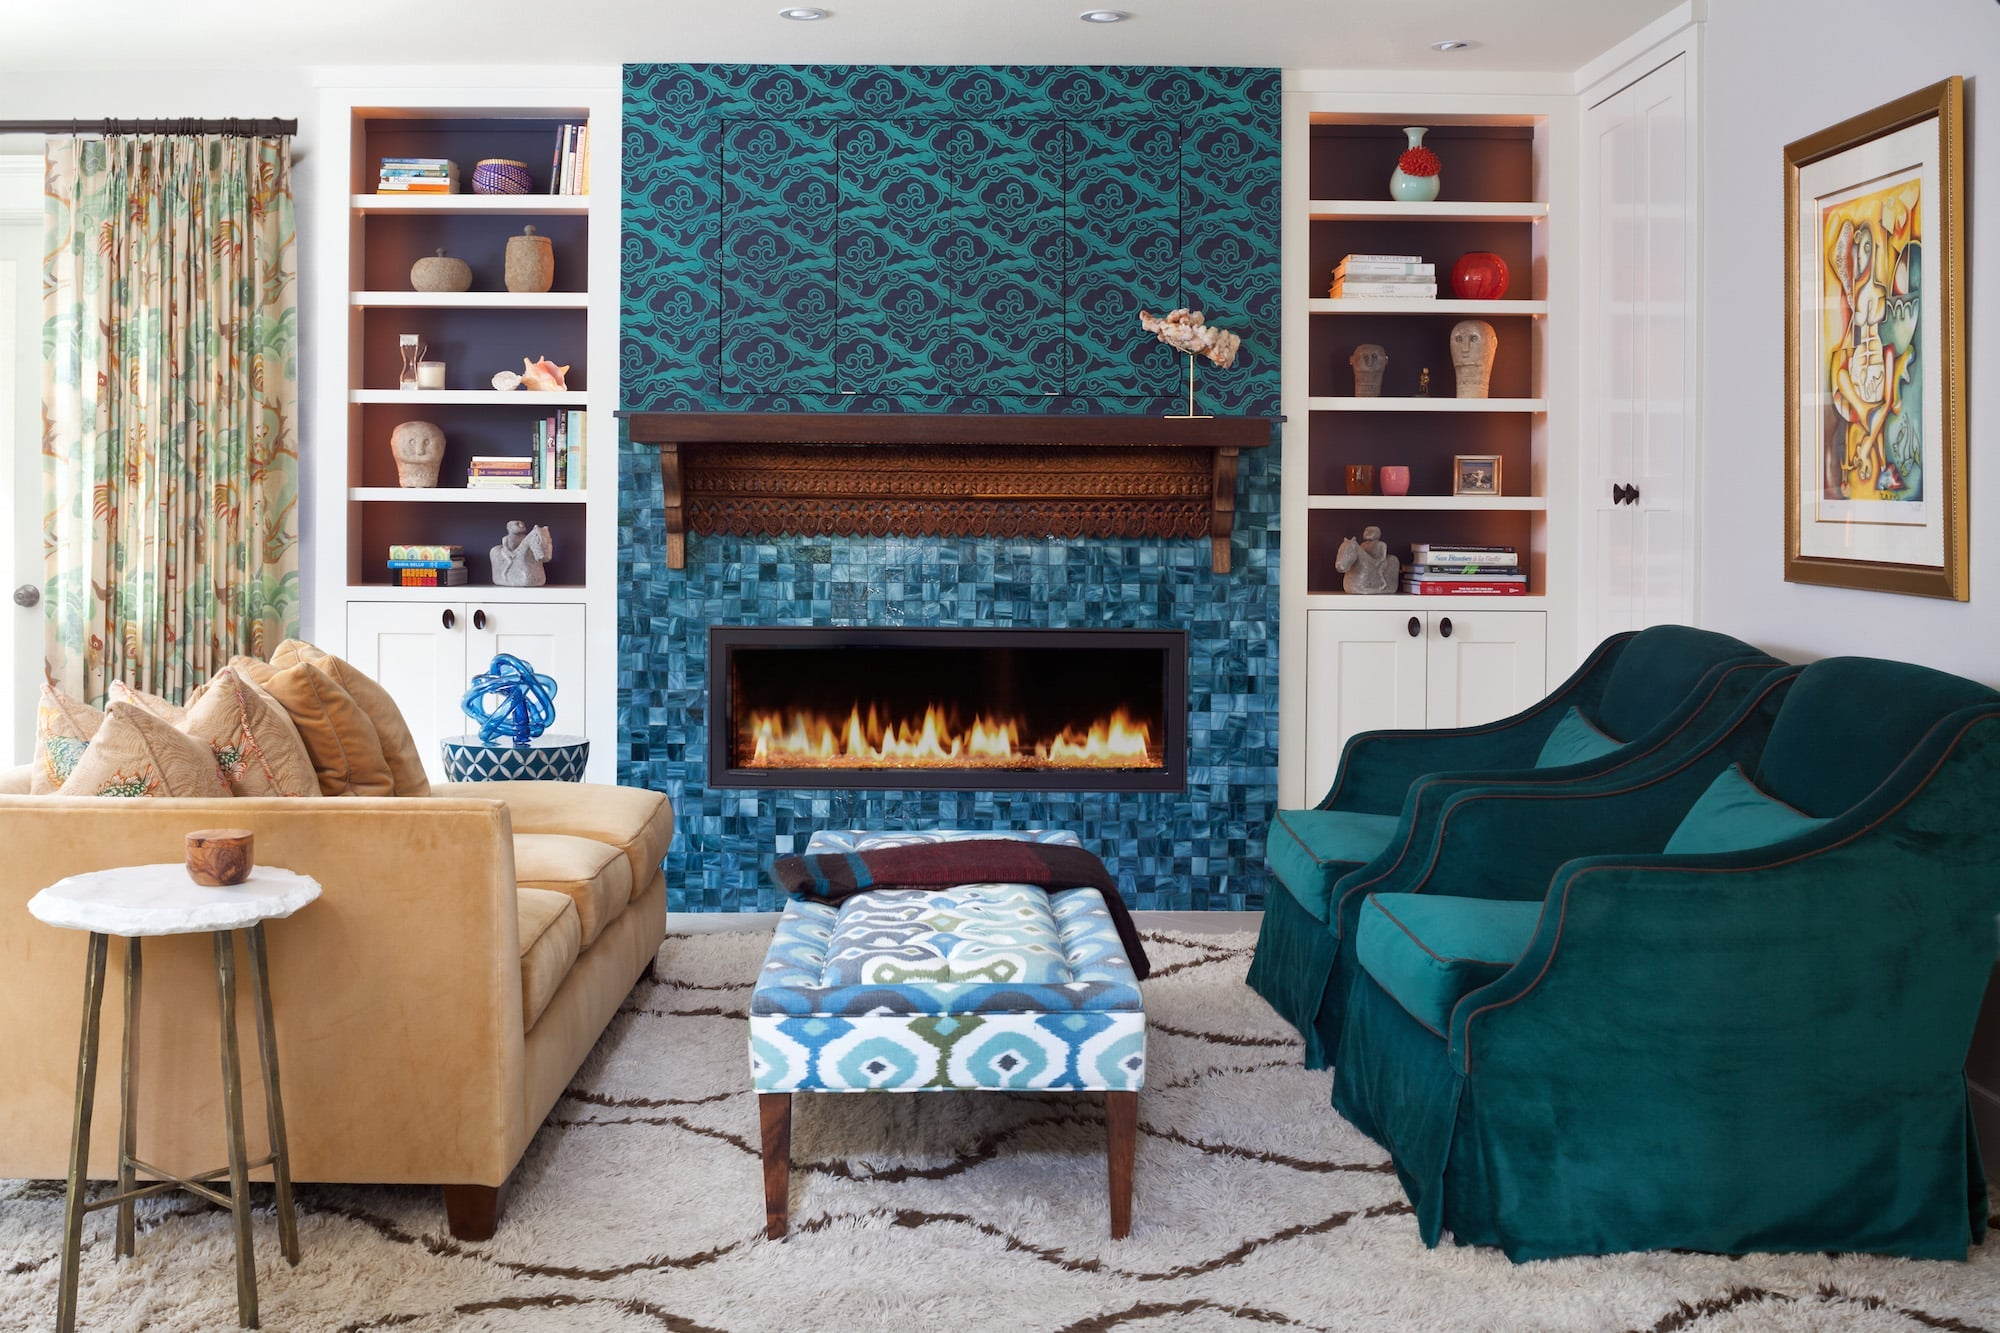 A Phillip Jeffries wallpaper helps to make the hearth a conversation starter. Carleton V's Puff drapery fabric and a Tibetan Wave shag rug from David E. Adler lend quieter patterns in the background. Photo by Emily Minton Redfield